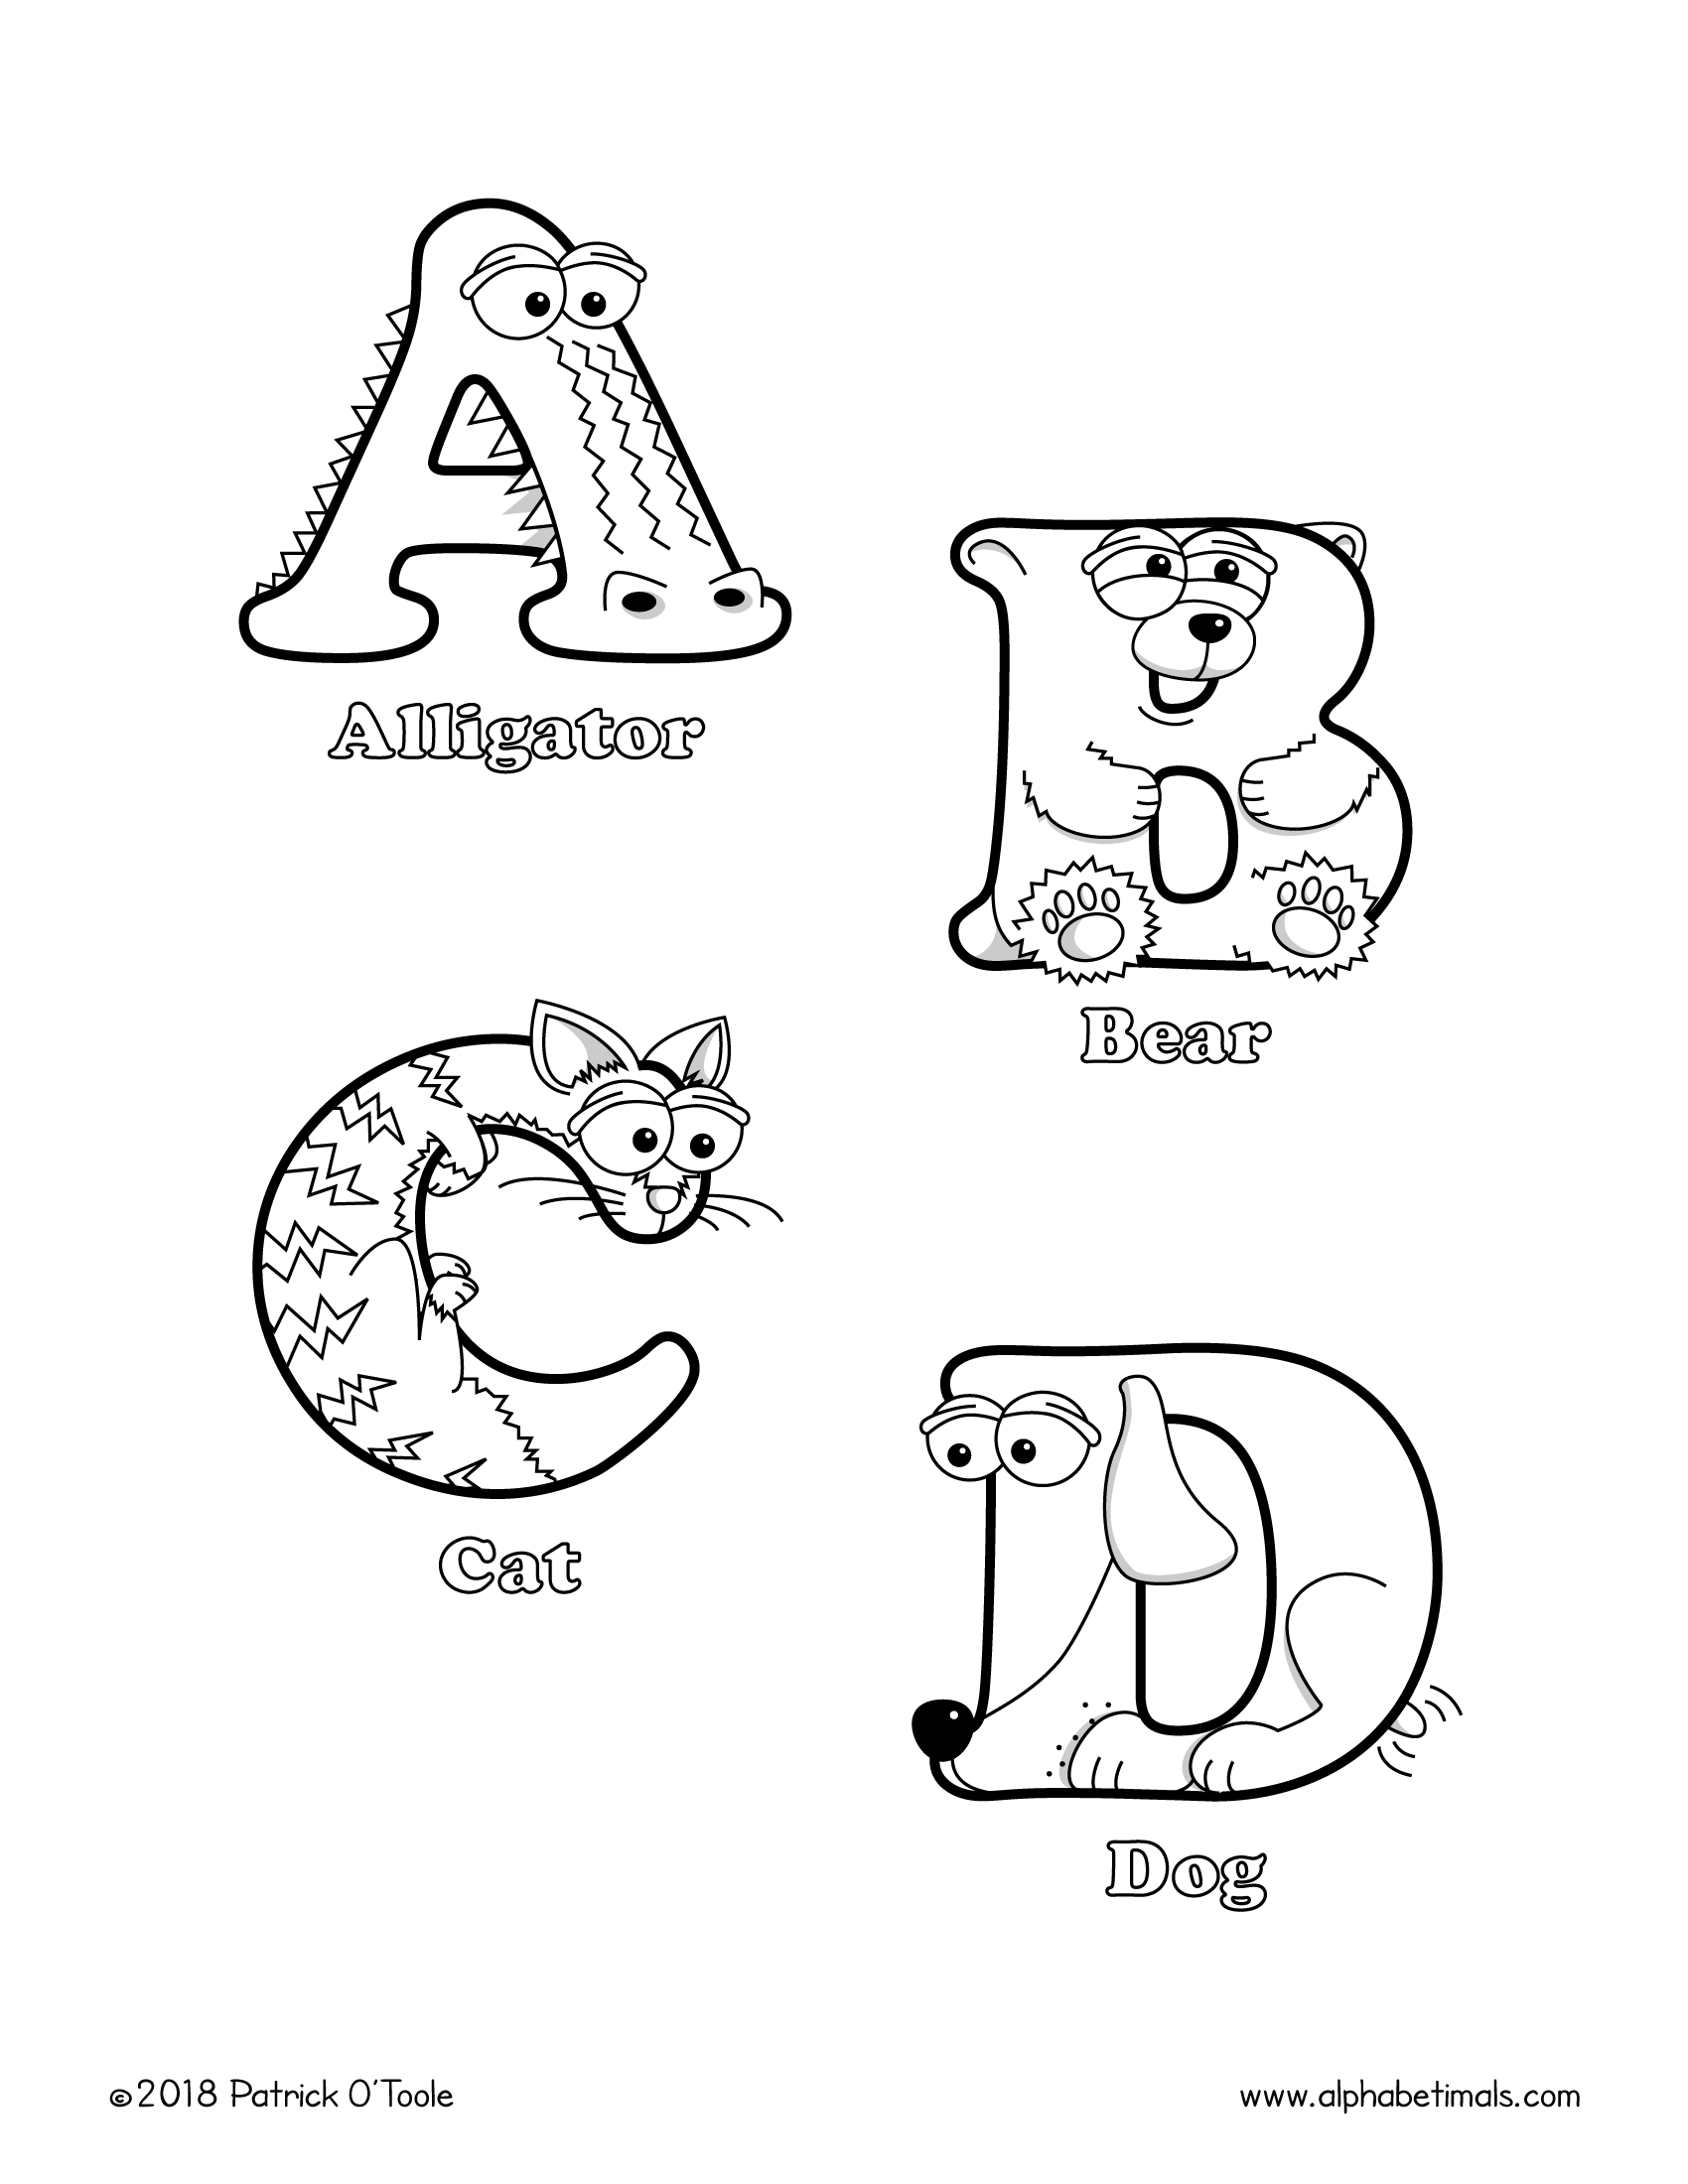 coloring alphabet animals fun coloring book and printable pages for kids free alphabet animals coloring